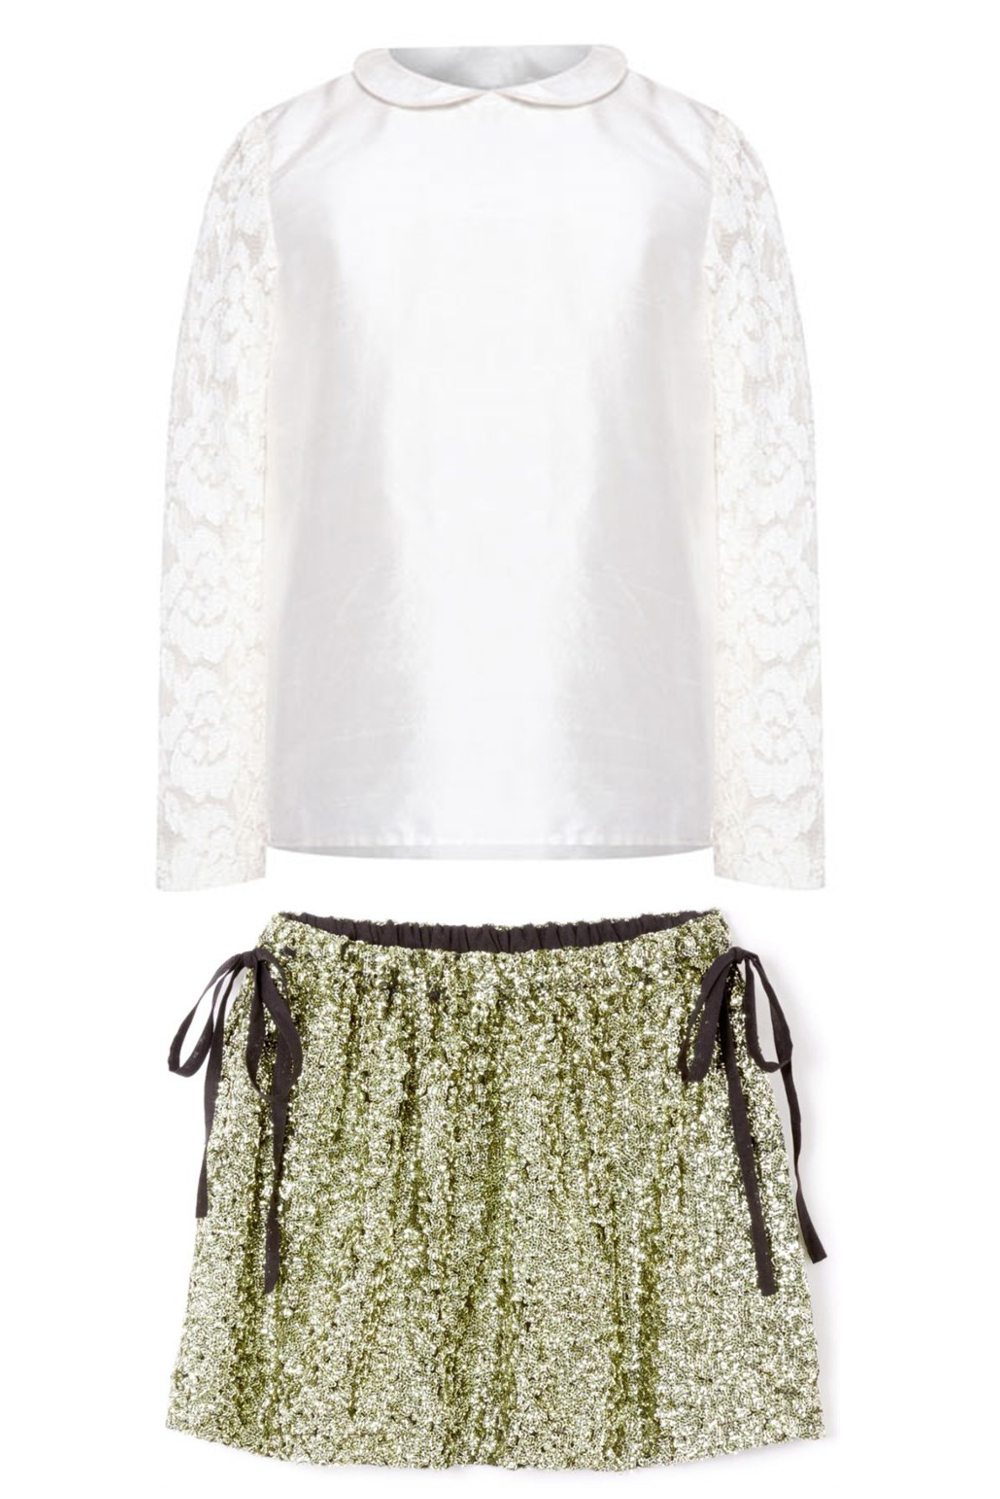 Shan and toad winter 2014, white blouse with bronze sequins skirt